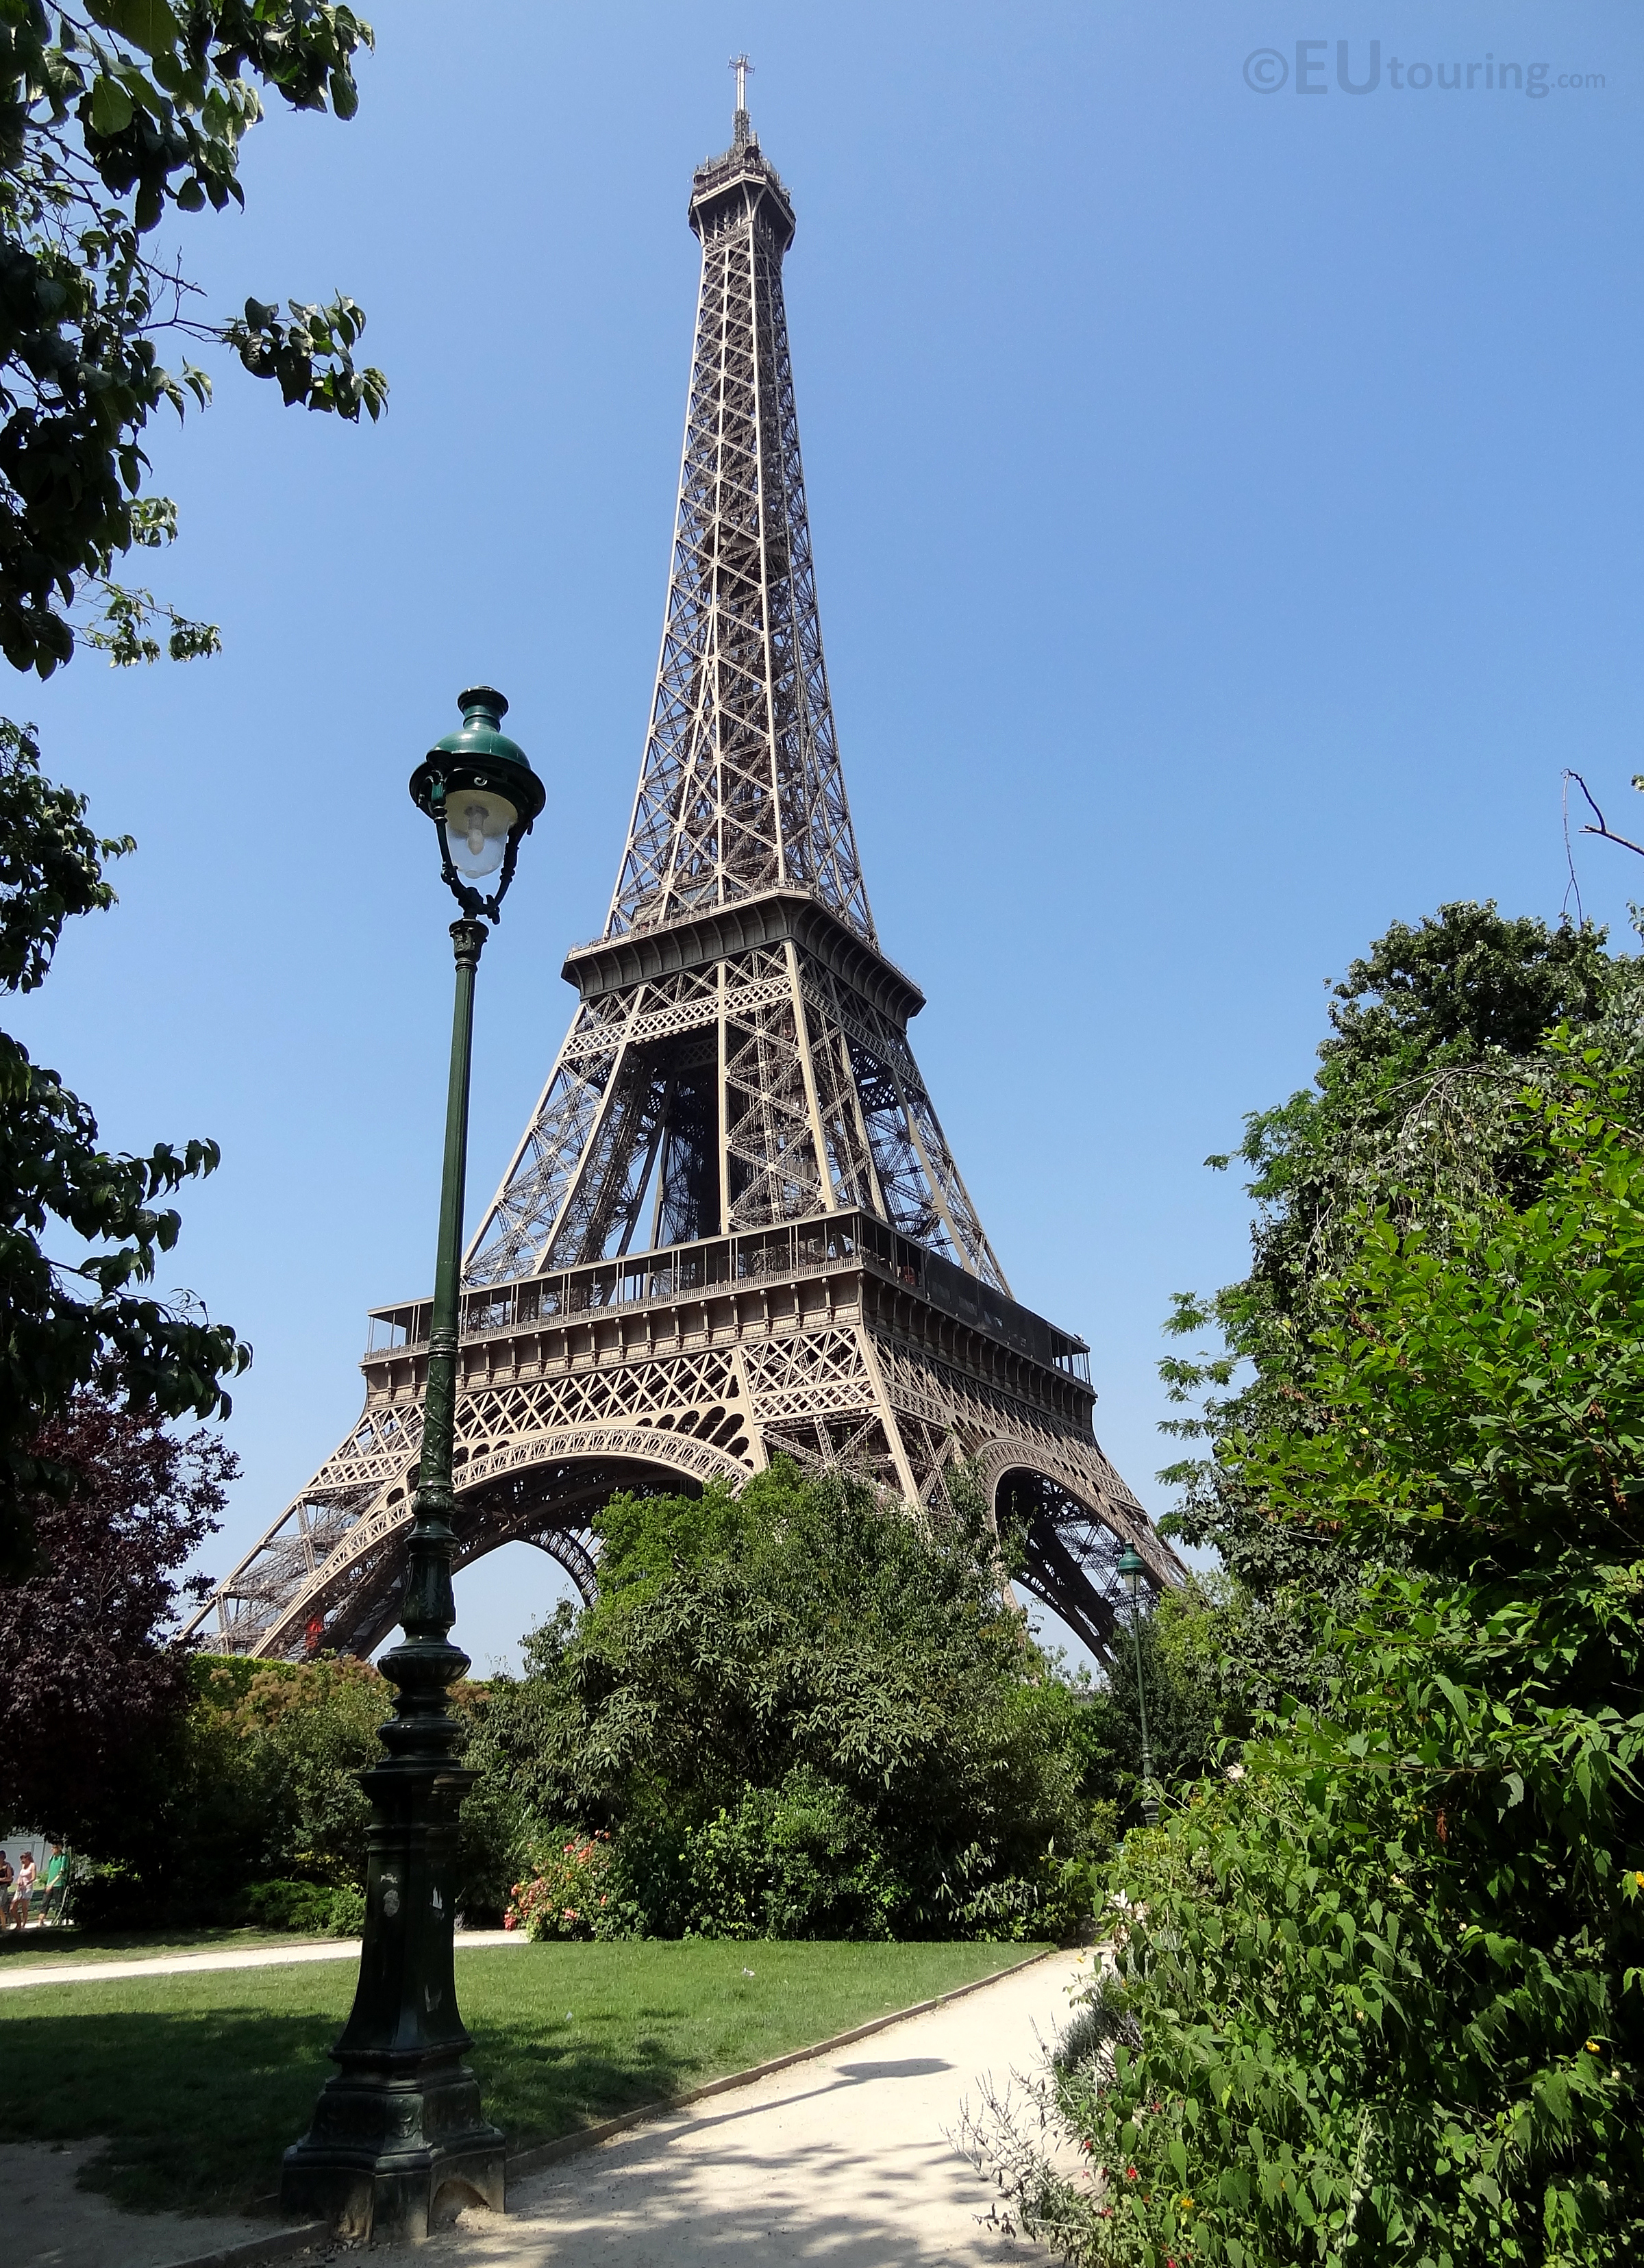 Eiffel Tower from Allee Maurice Baumont